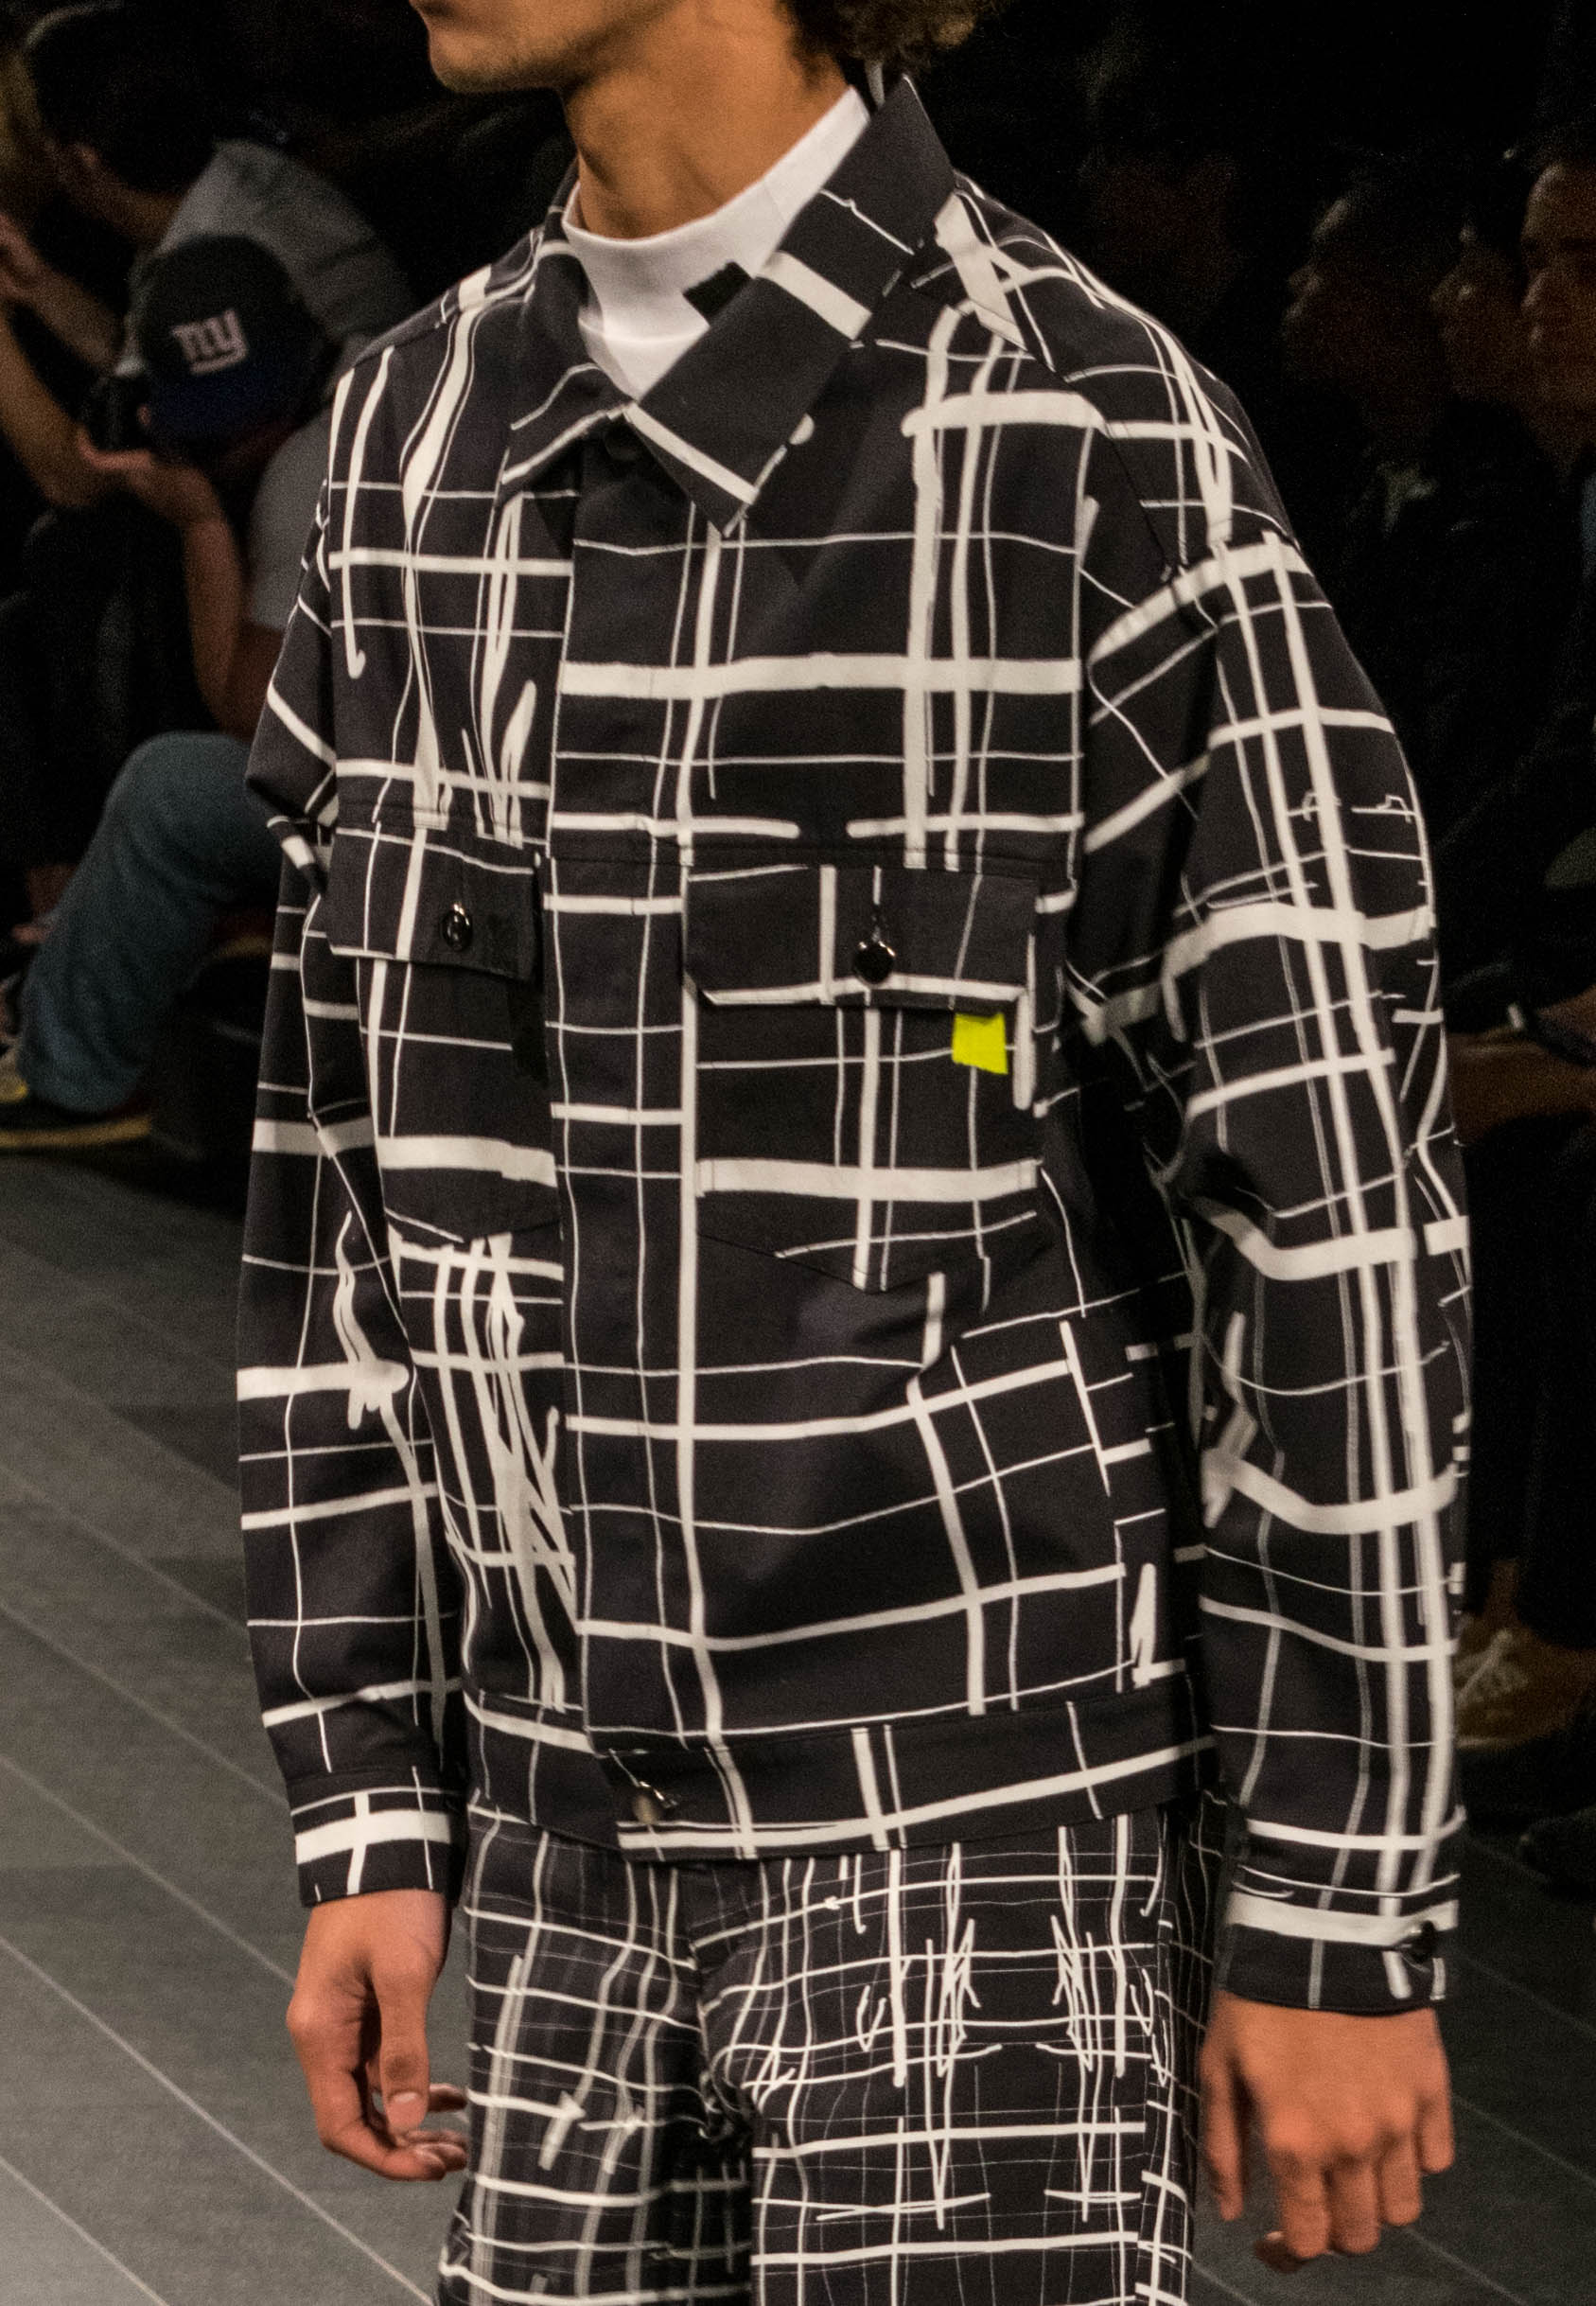 43 Rochambeau SS18 Runway Show - New York Fashion Week 2017 - FilterGrade Blog